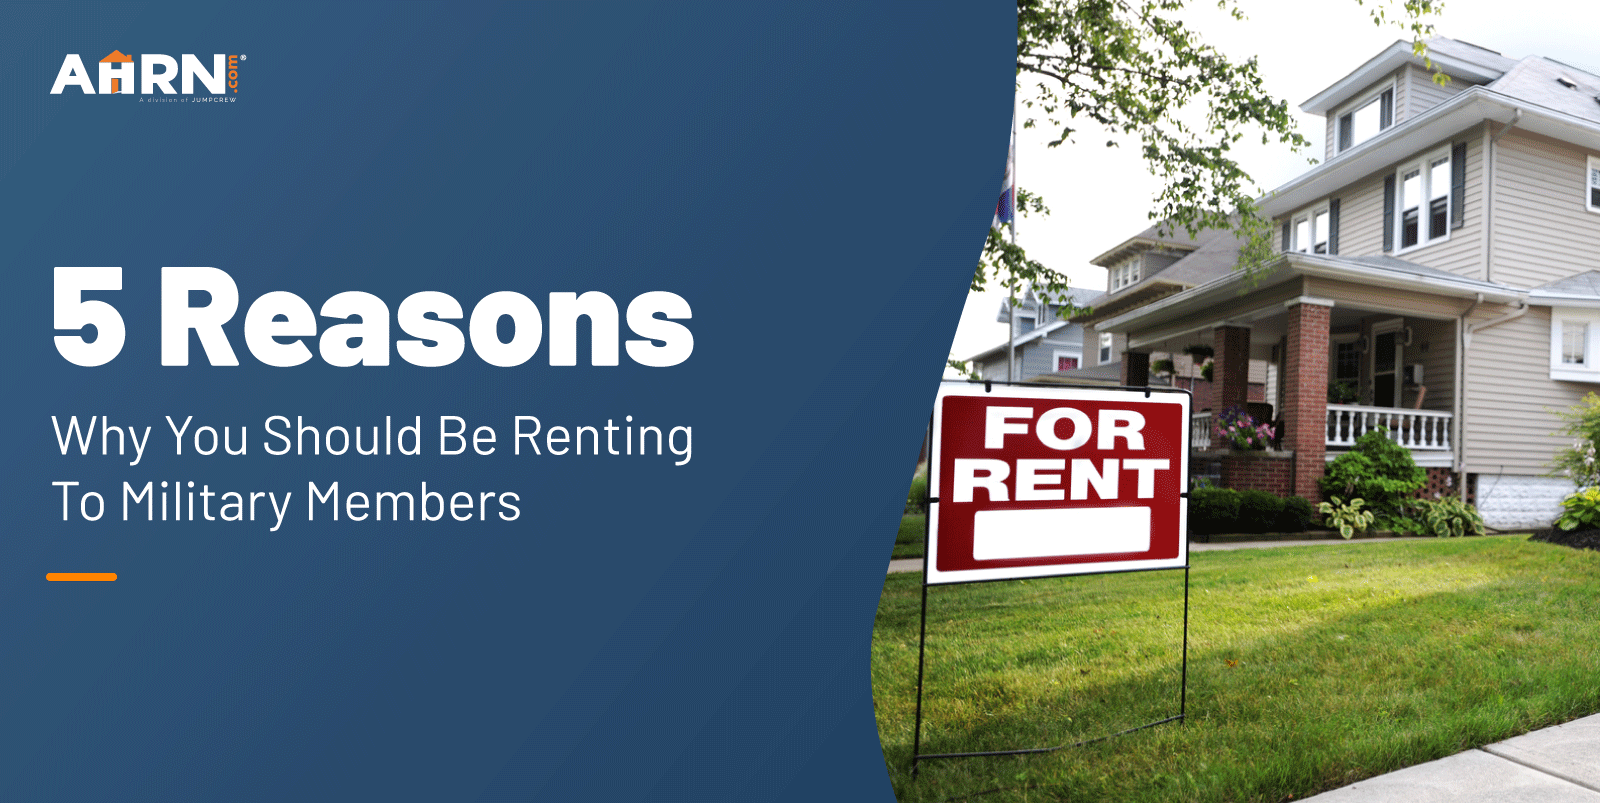 5 Reasons Why You Should Be Renting To Military Members